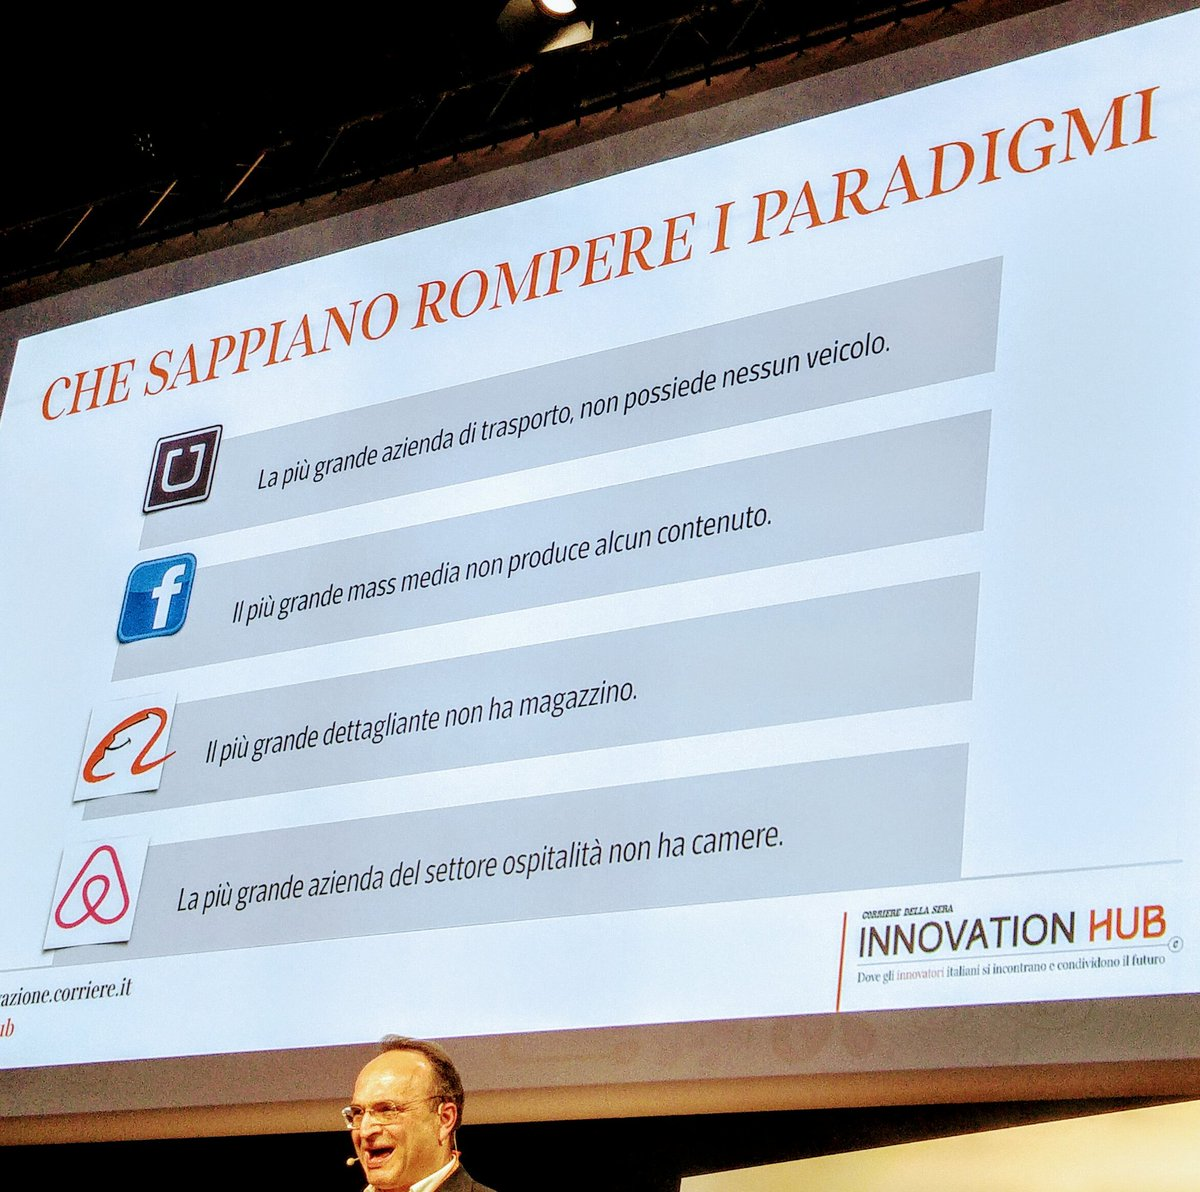 #InnovationHub